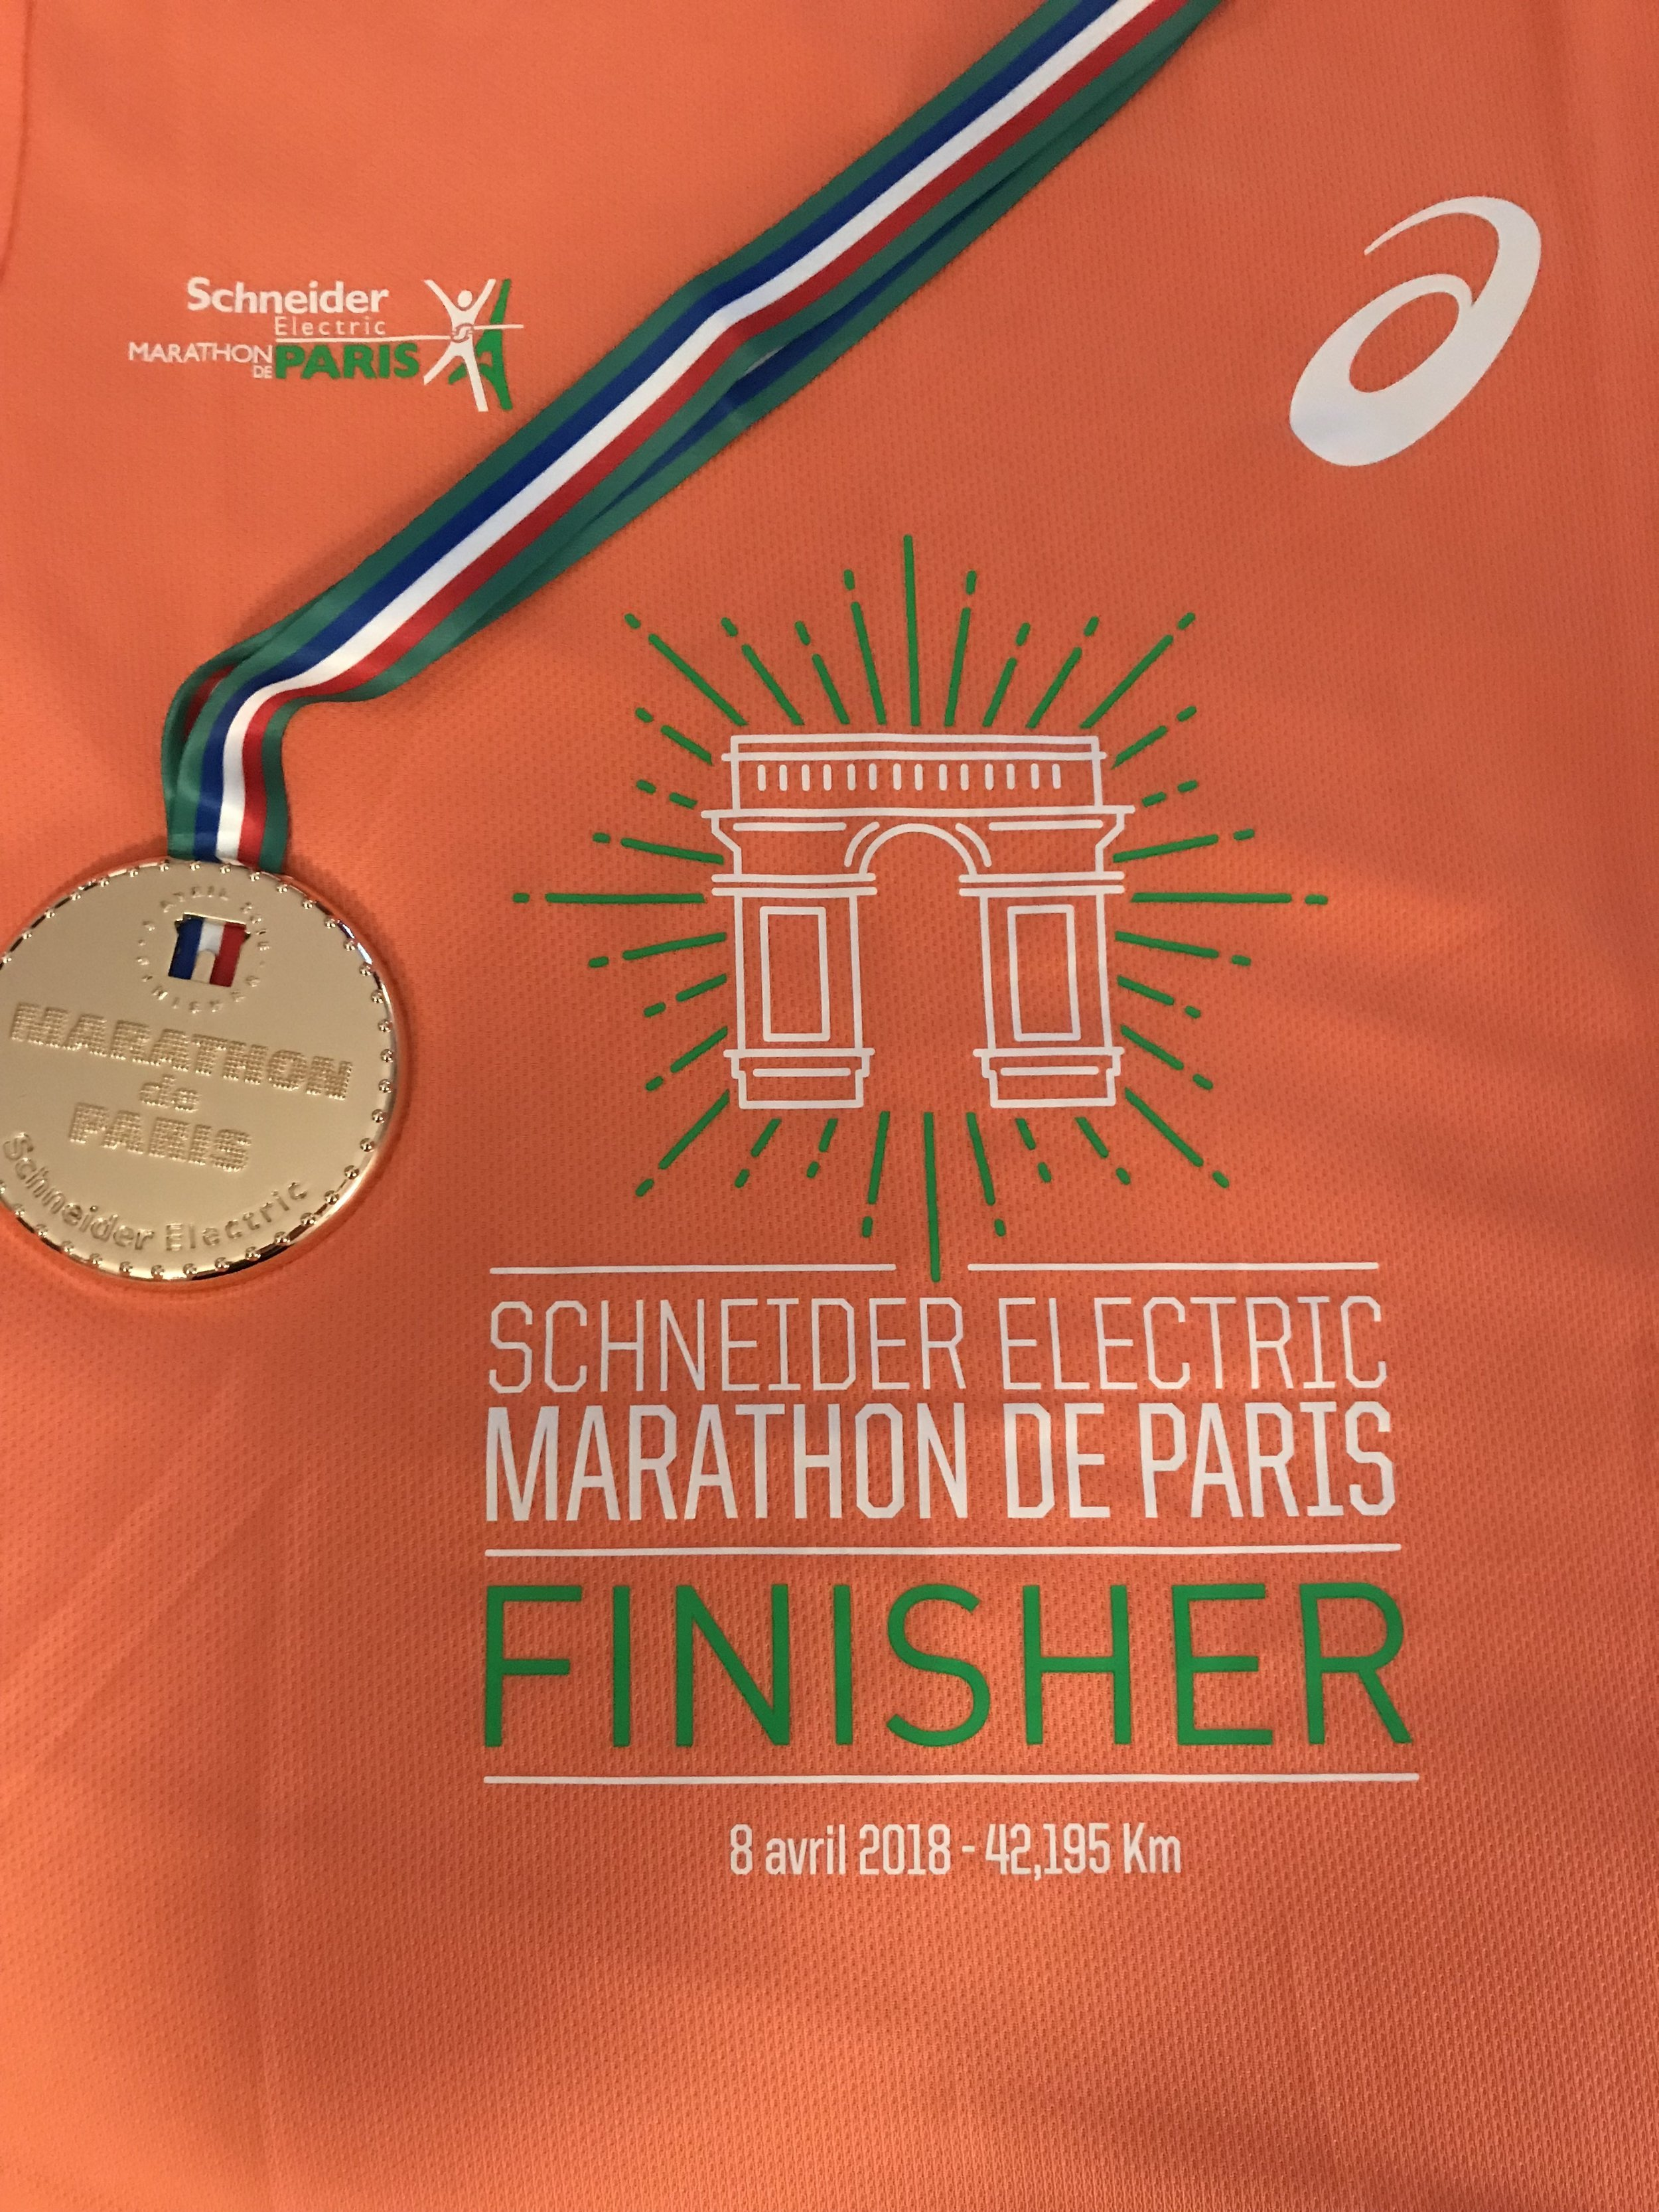 The race bling and finisher's Asics technical tee. Each of the studs on the medal represent a kilometre, so there are 42 dots on the medal.